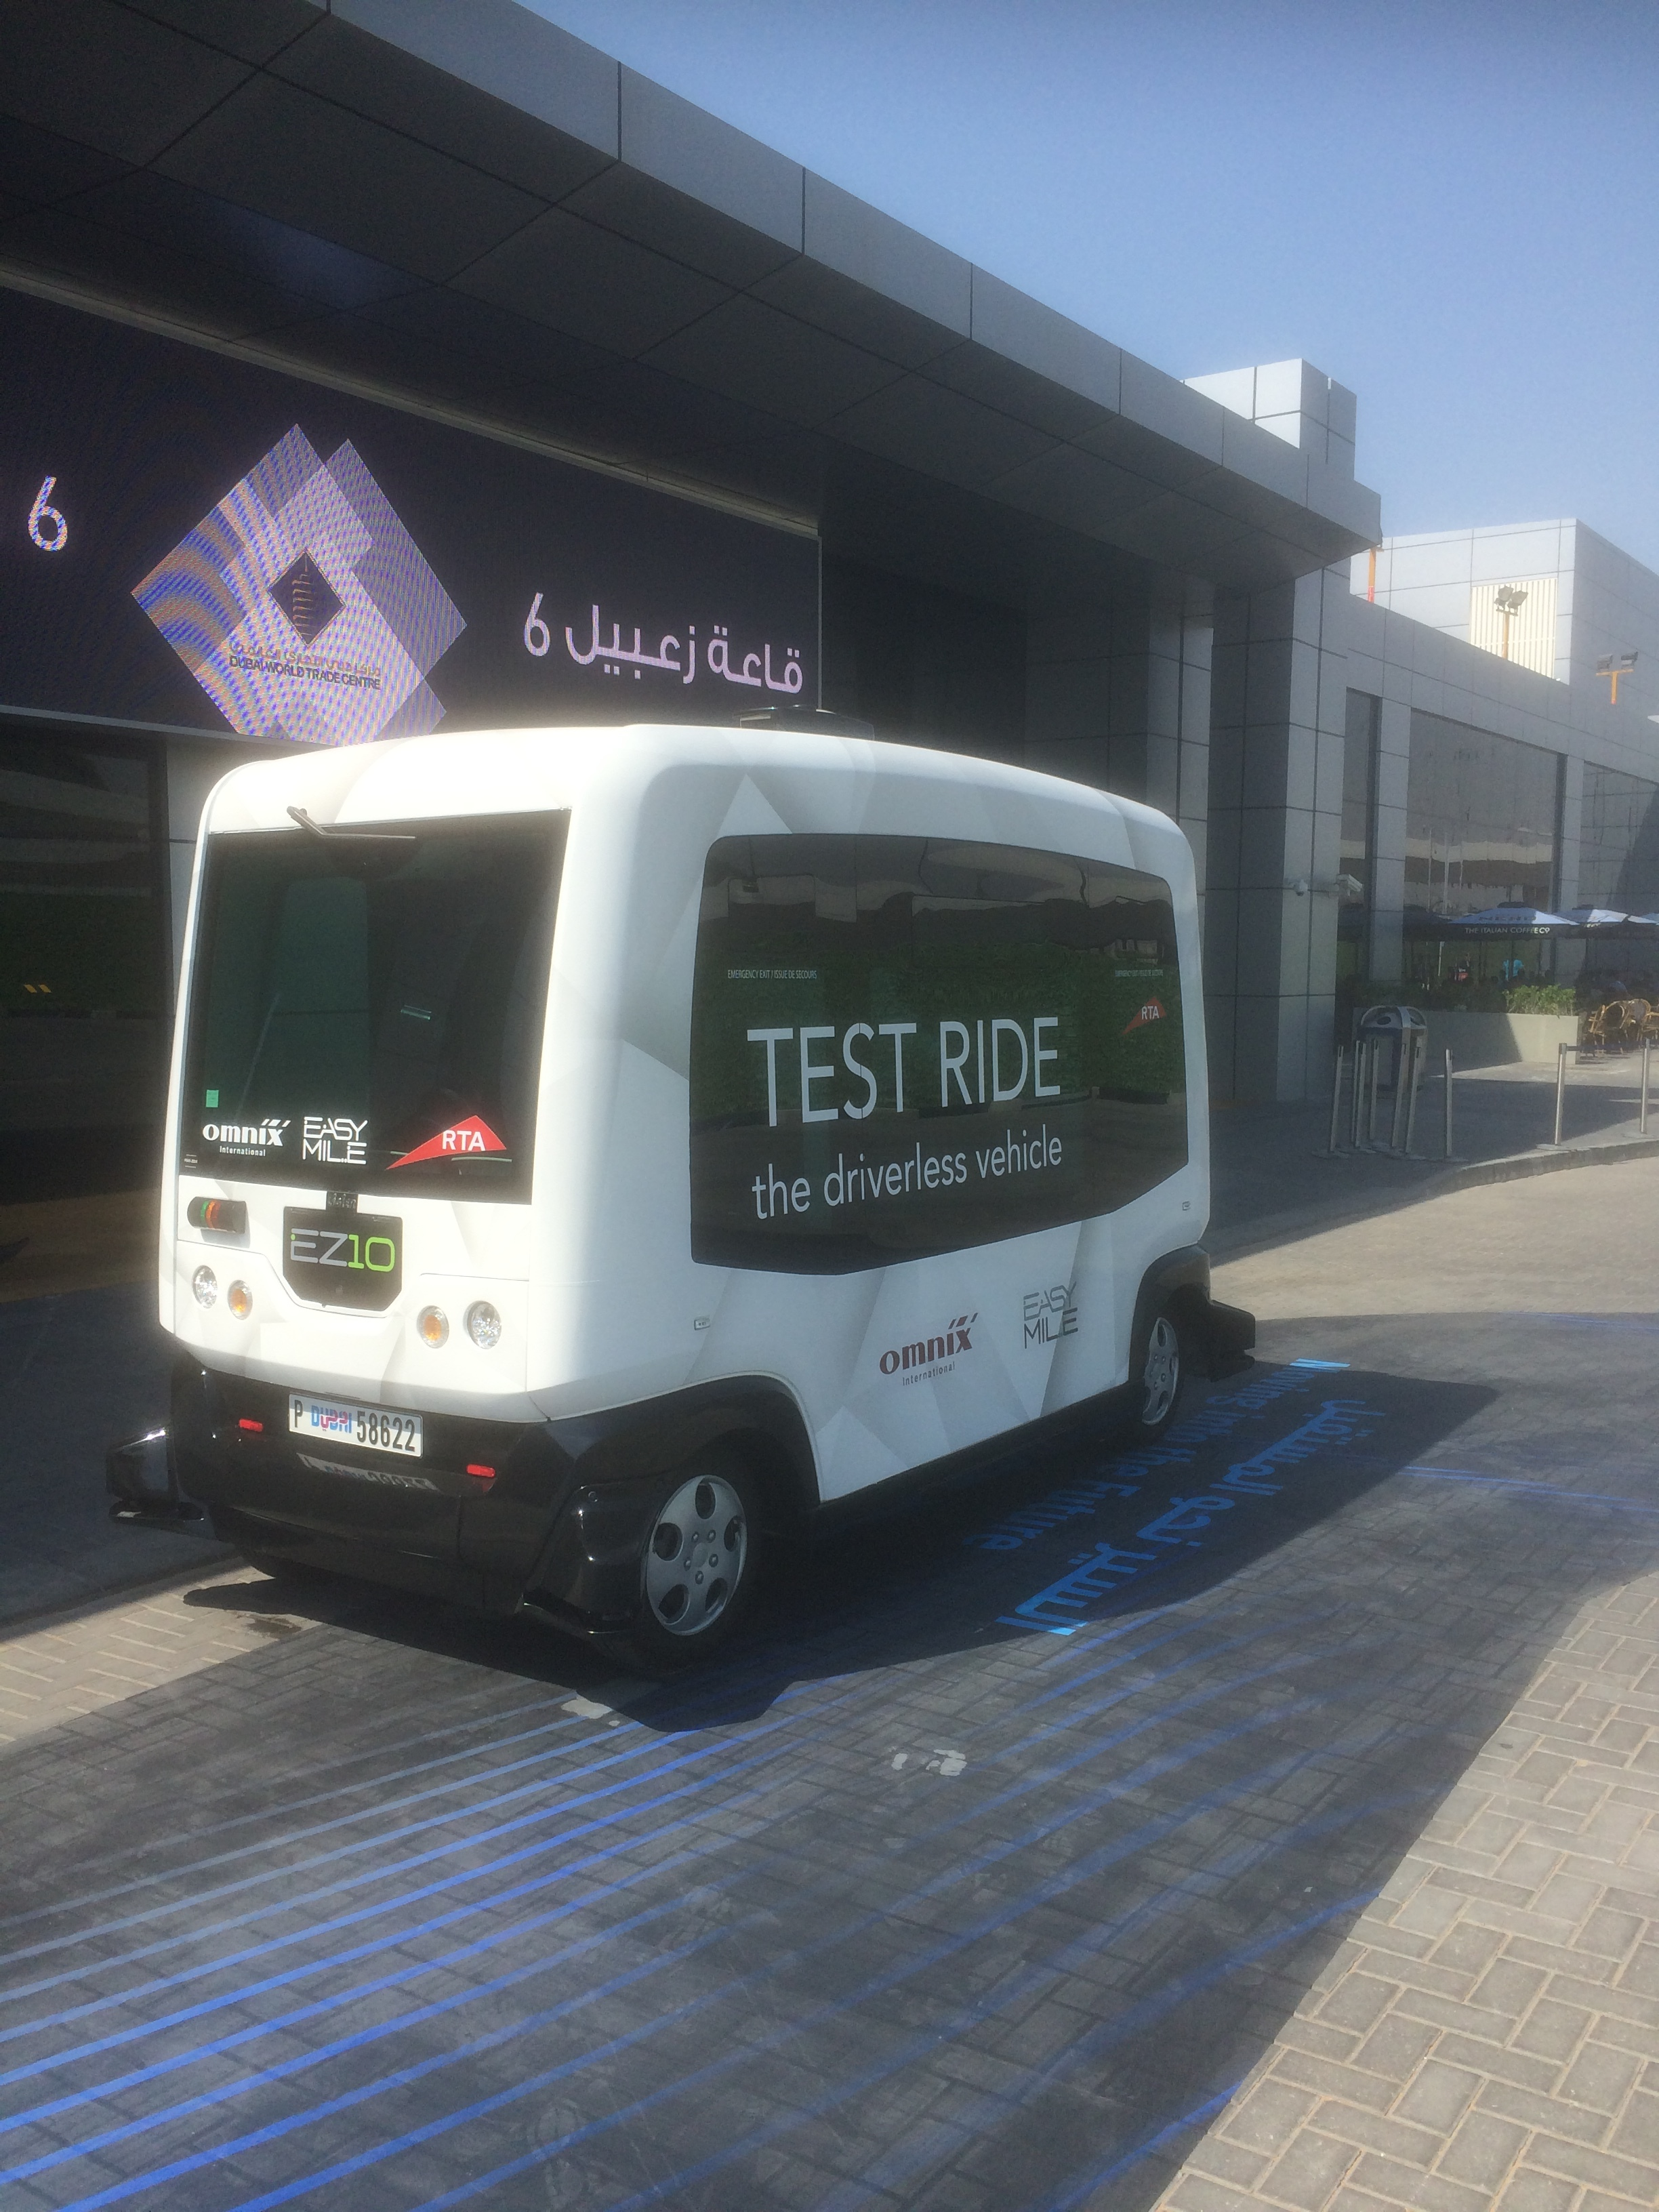 Driverless minibus on display and test running outside UITP's MENA Transport event in Dubai at the end of April